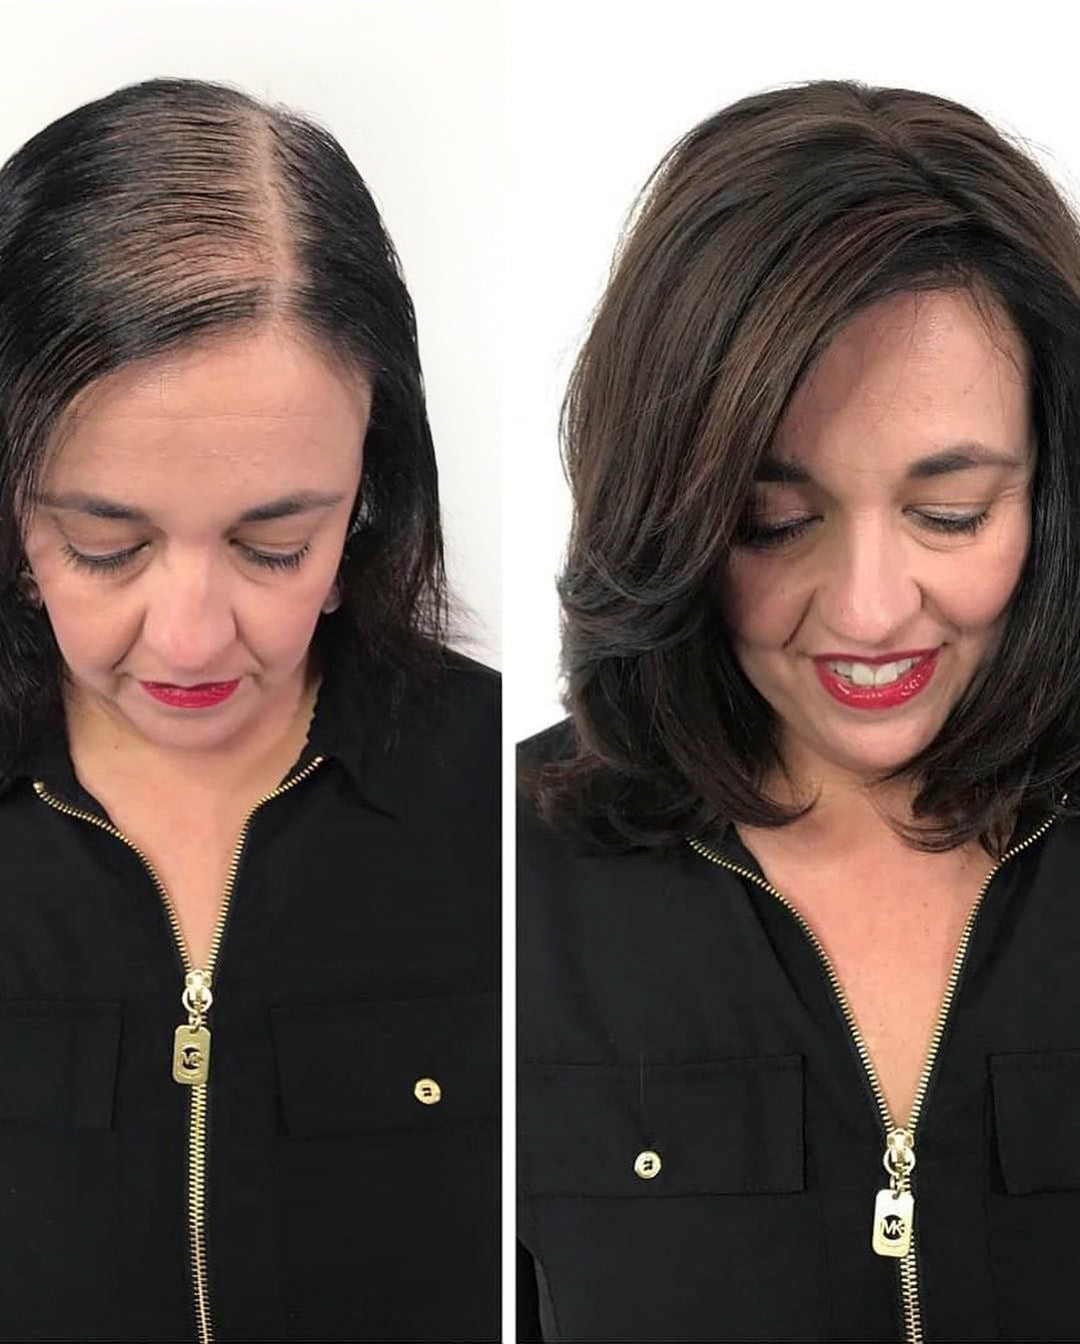 hairloss, before and after woman, wig, alopecia, female pattern baldness